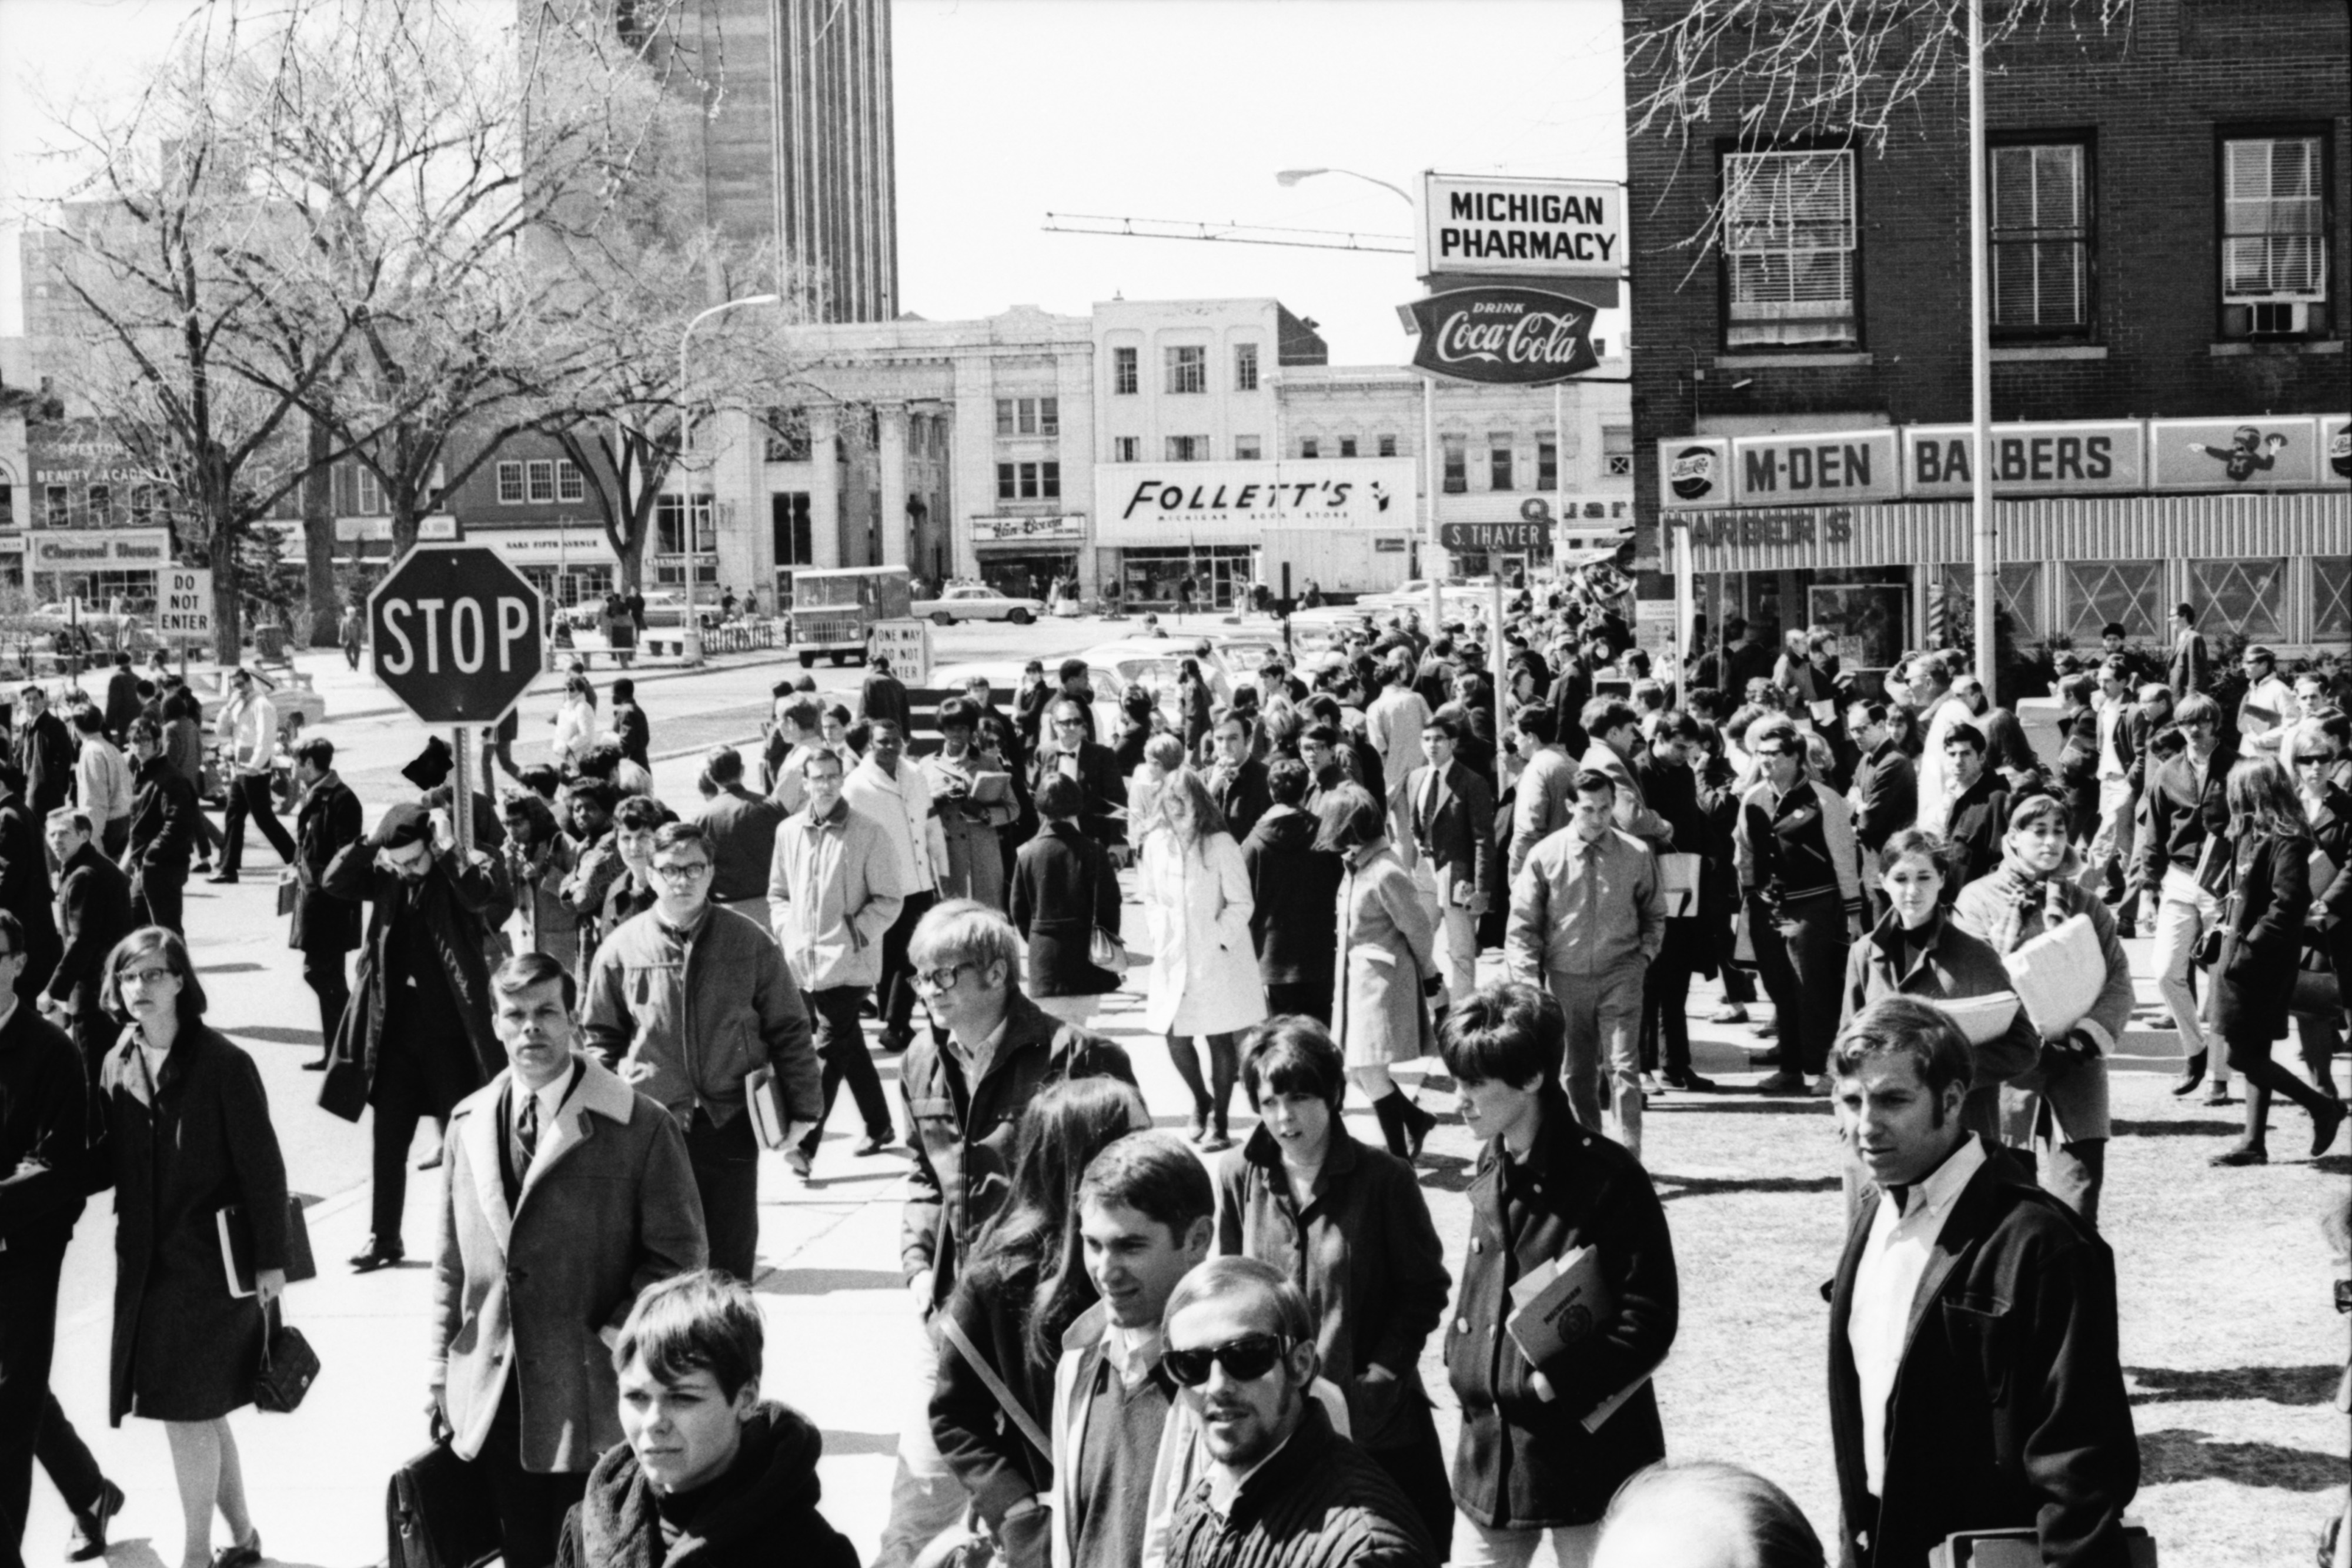 Crowd, Martin Luther King Jr Funeral, April 1968 image